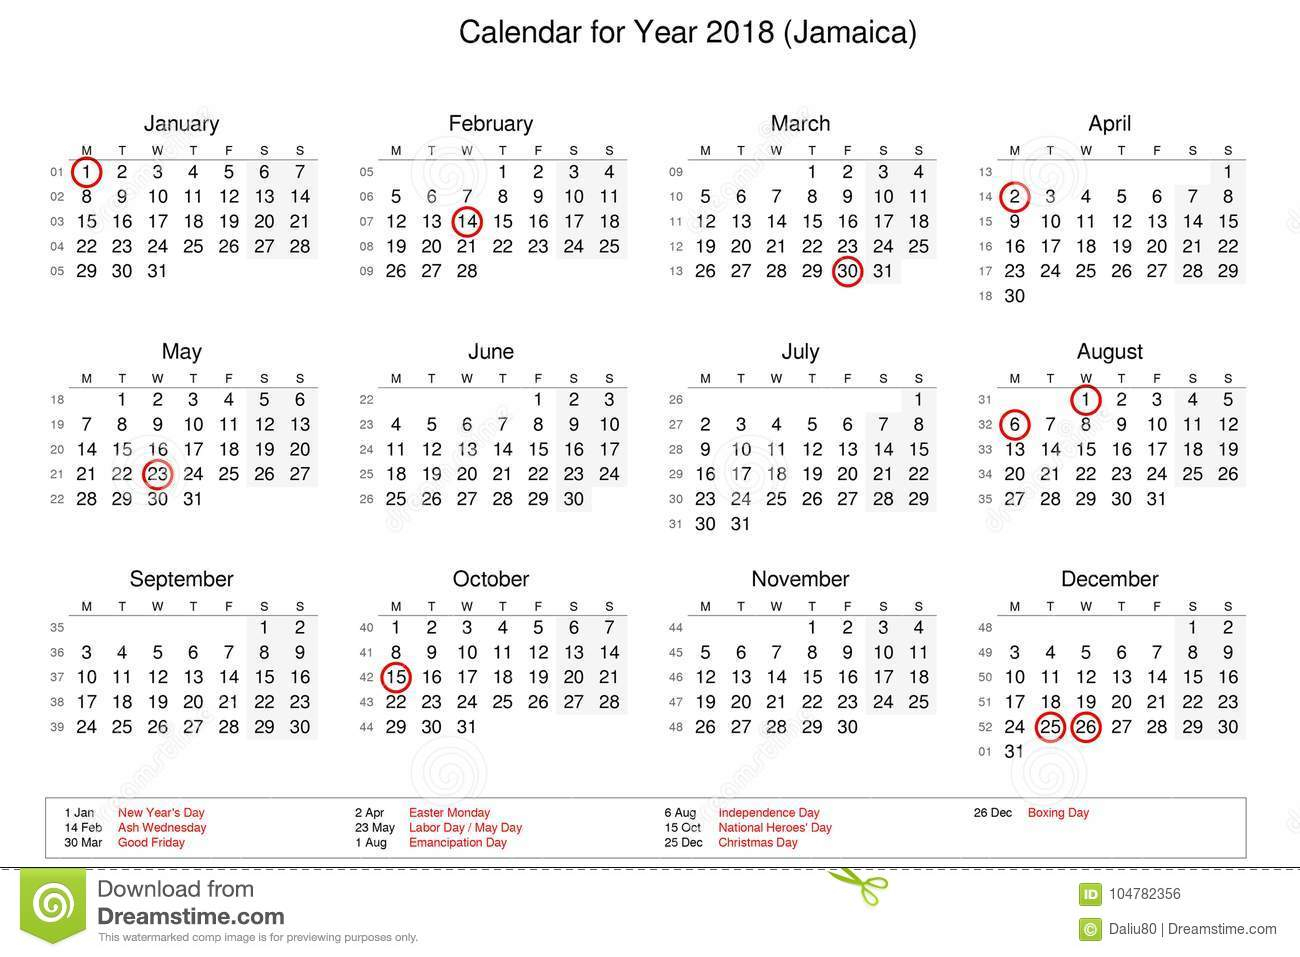 Calendar Of Year 2018 With Public Holidays And Bank Holidays